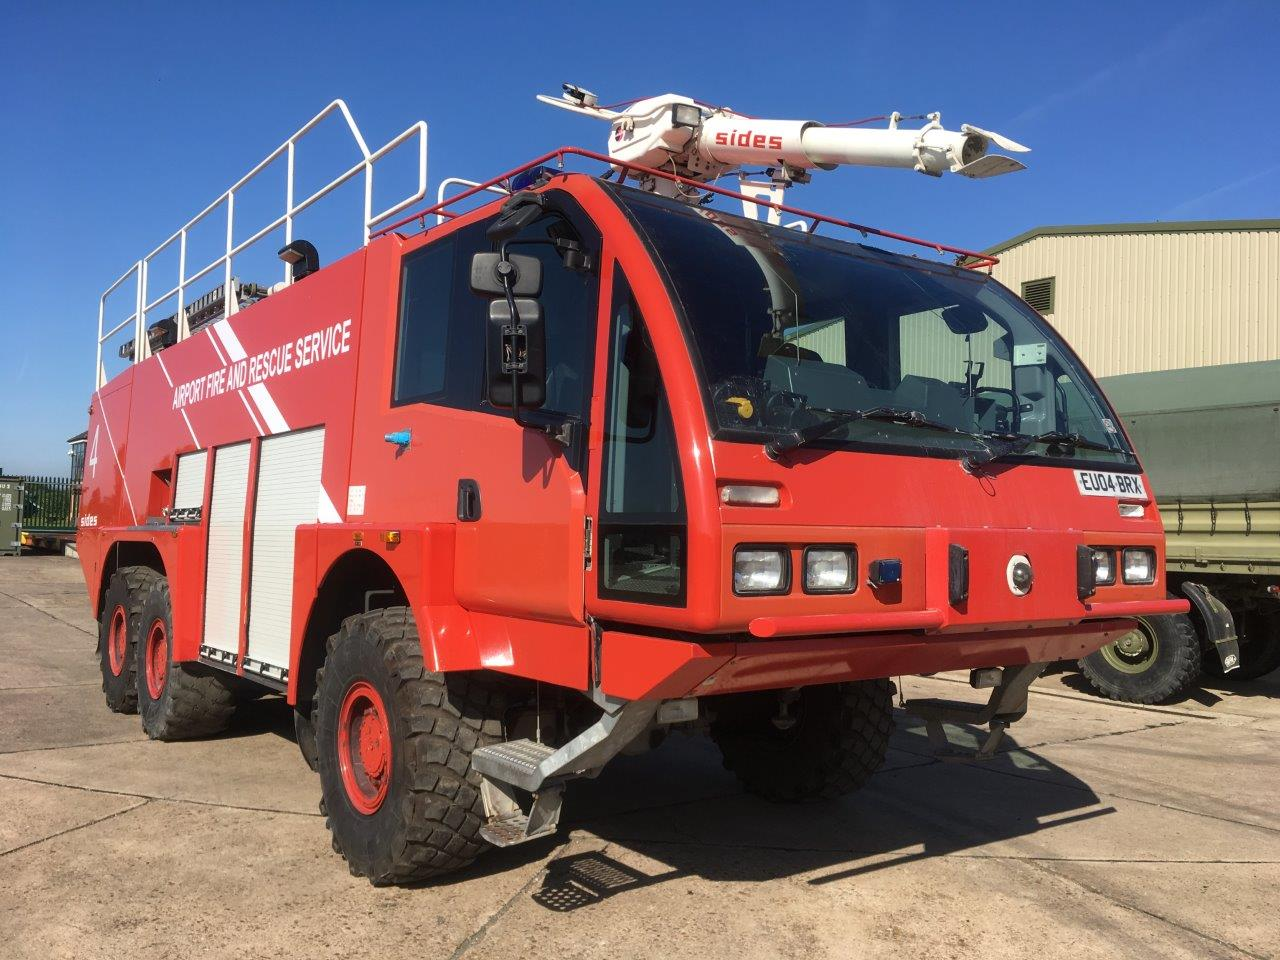 Evems.com - Fire Engines For Sale - Sides VMA112 6x6